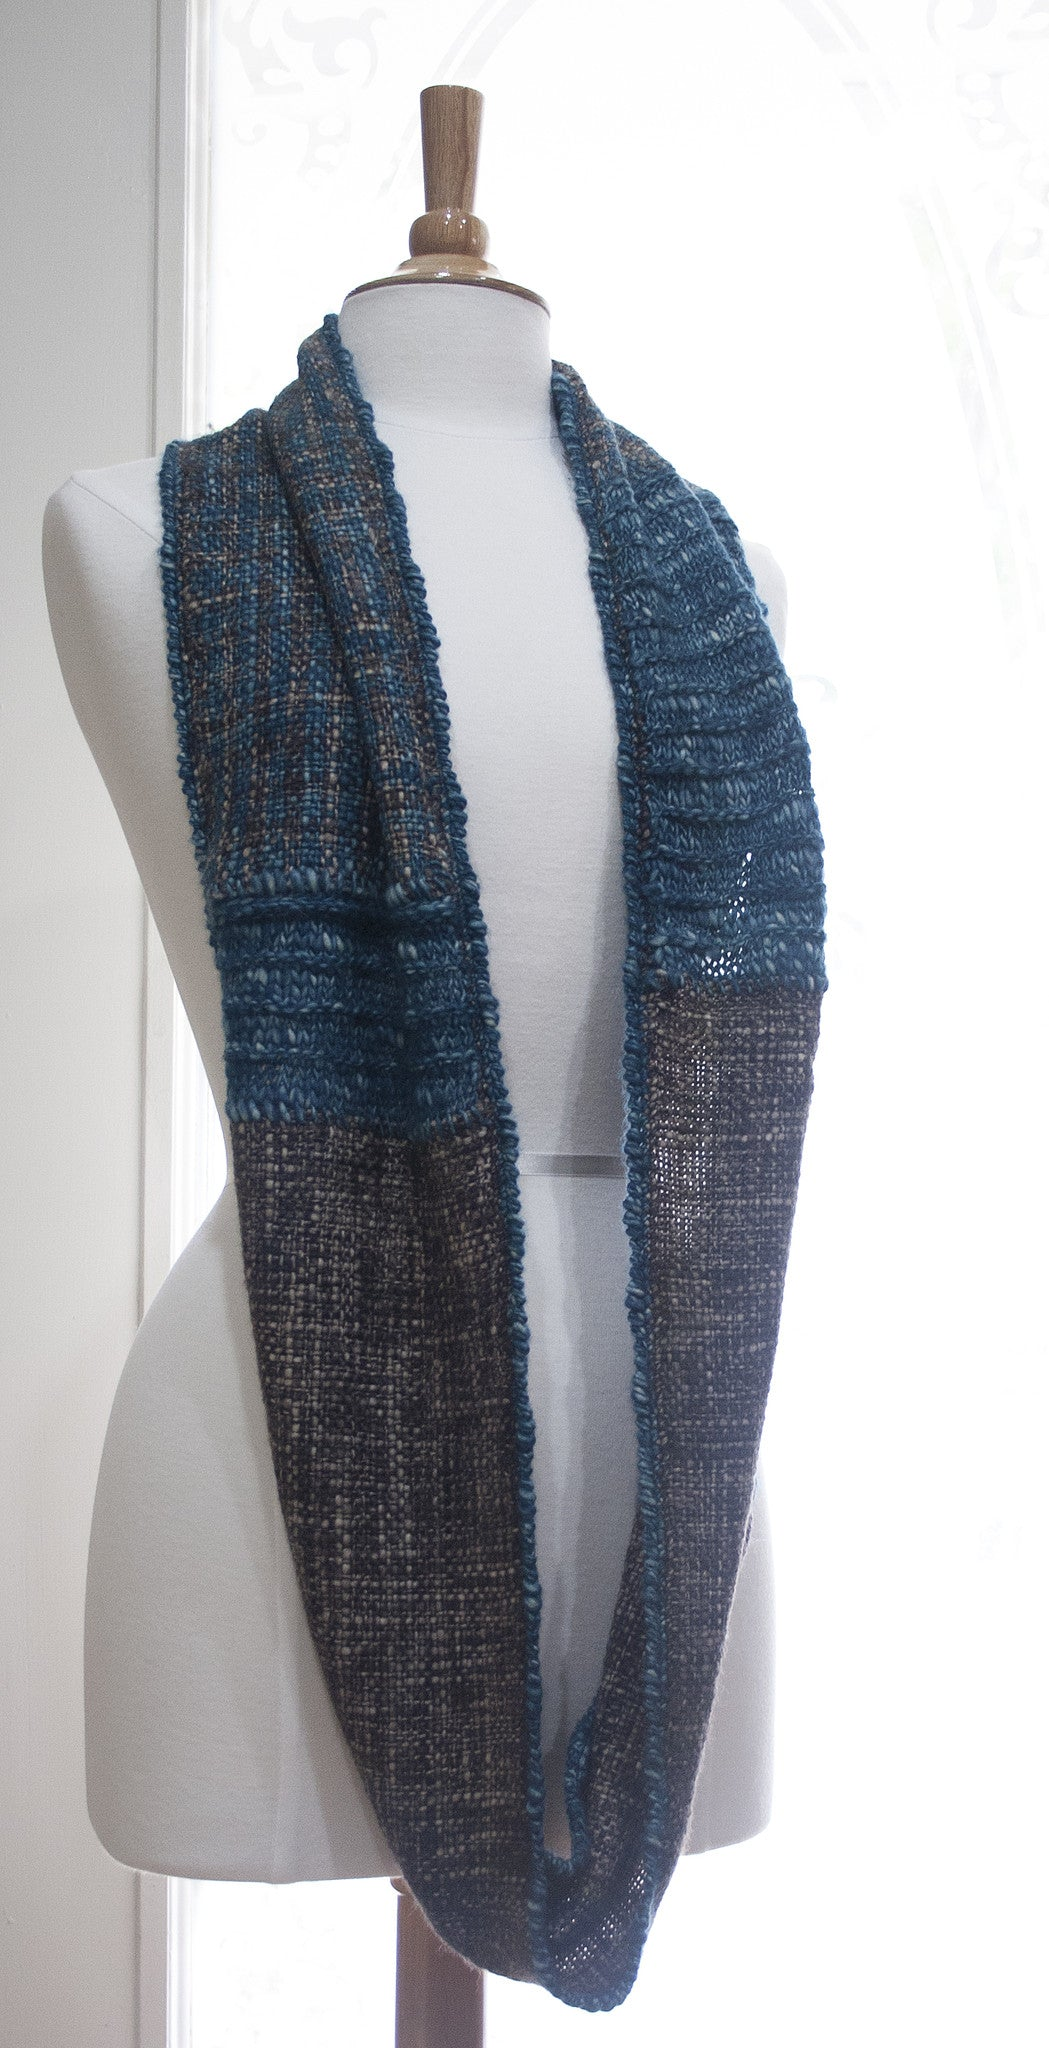 Lake Travis Woven Scarf Pattern